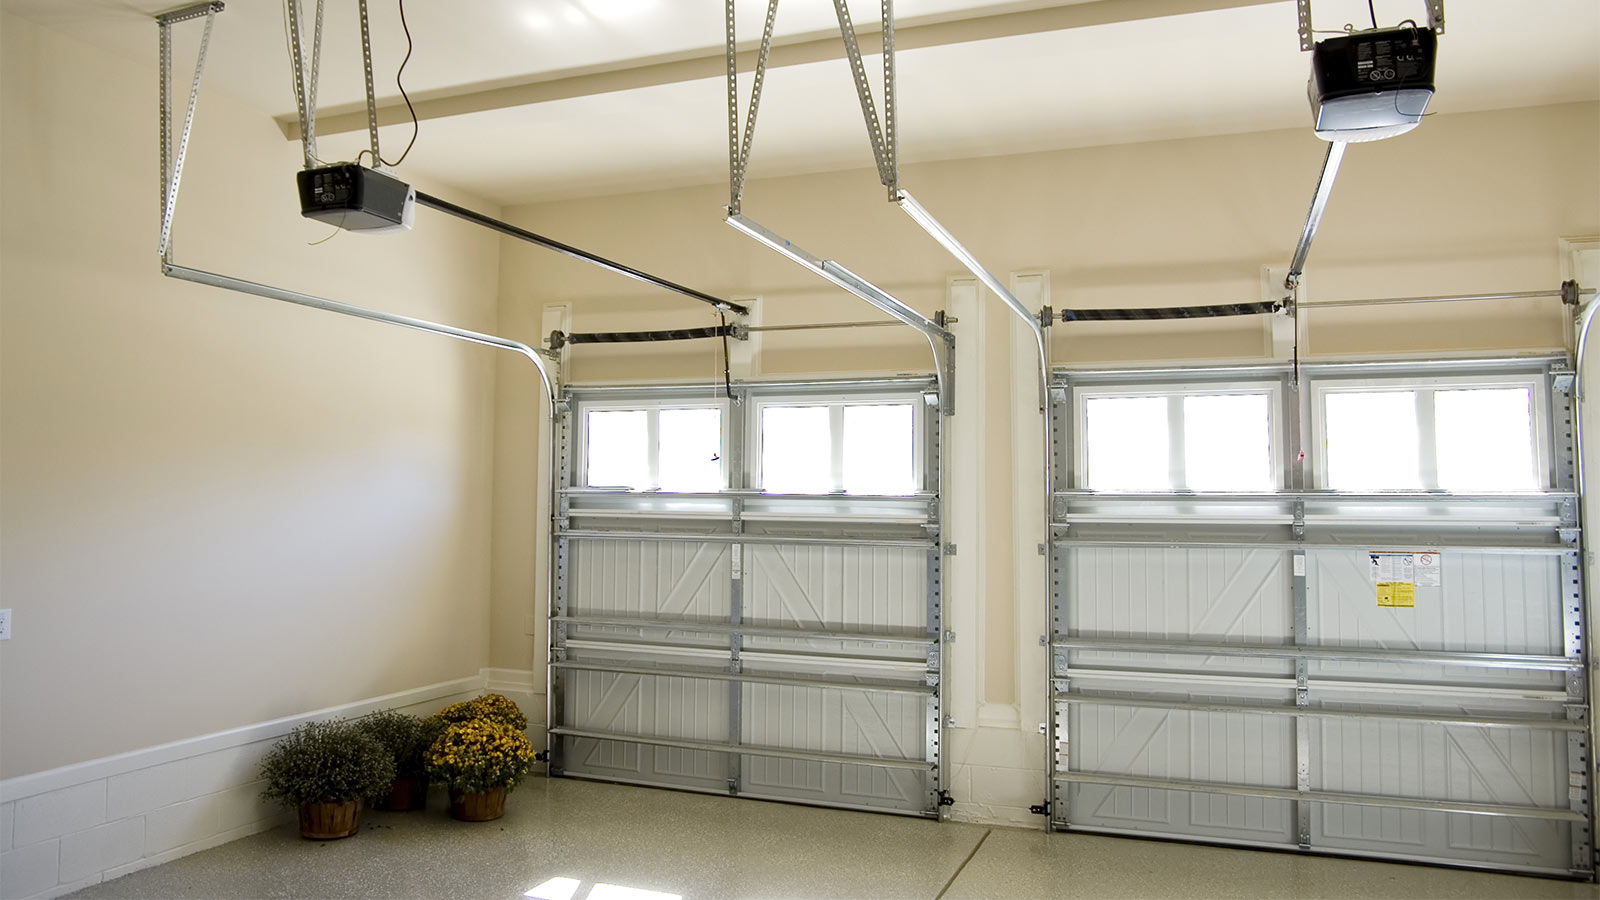 Sectional Garage Doors from Steel Security Doors East London suppliers.